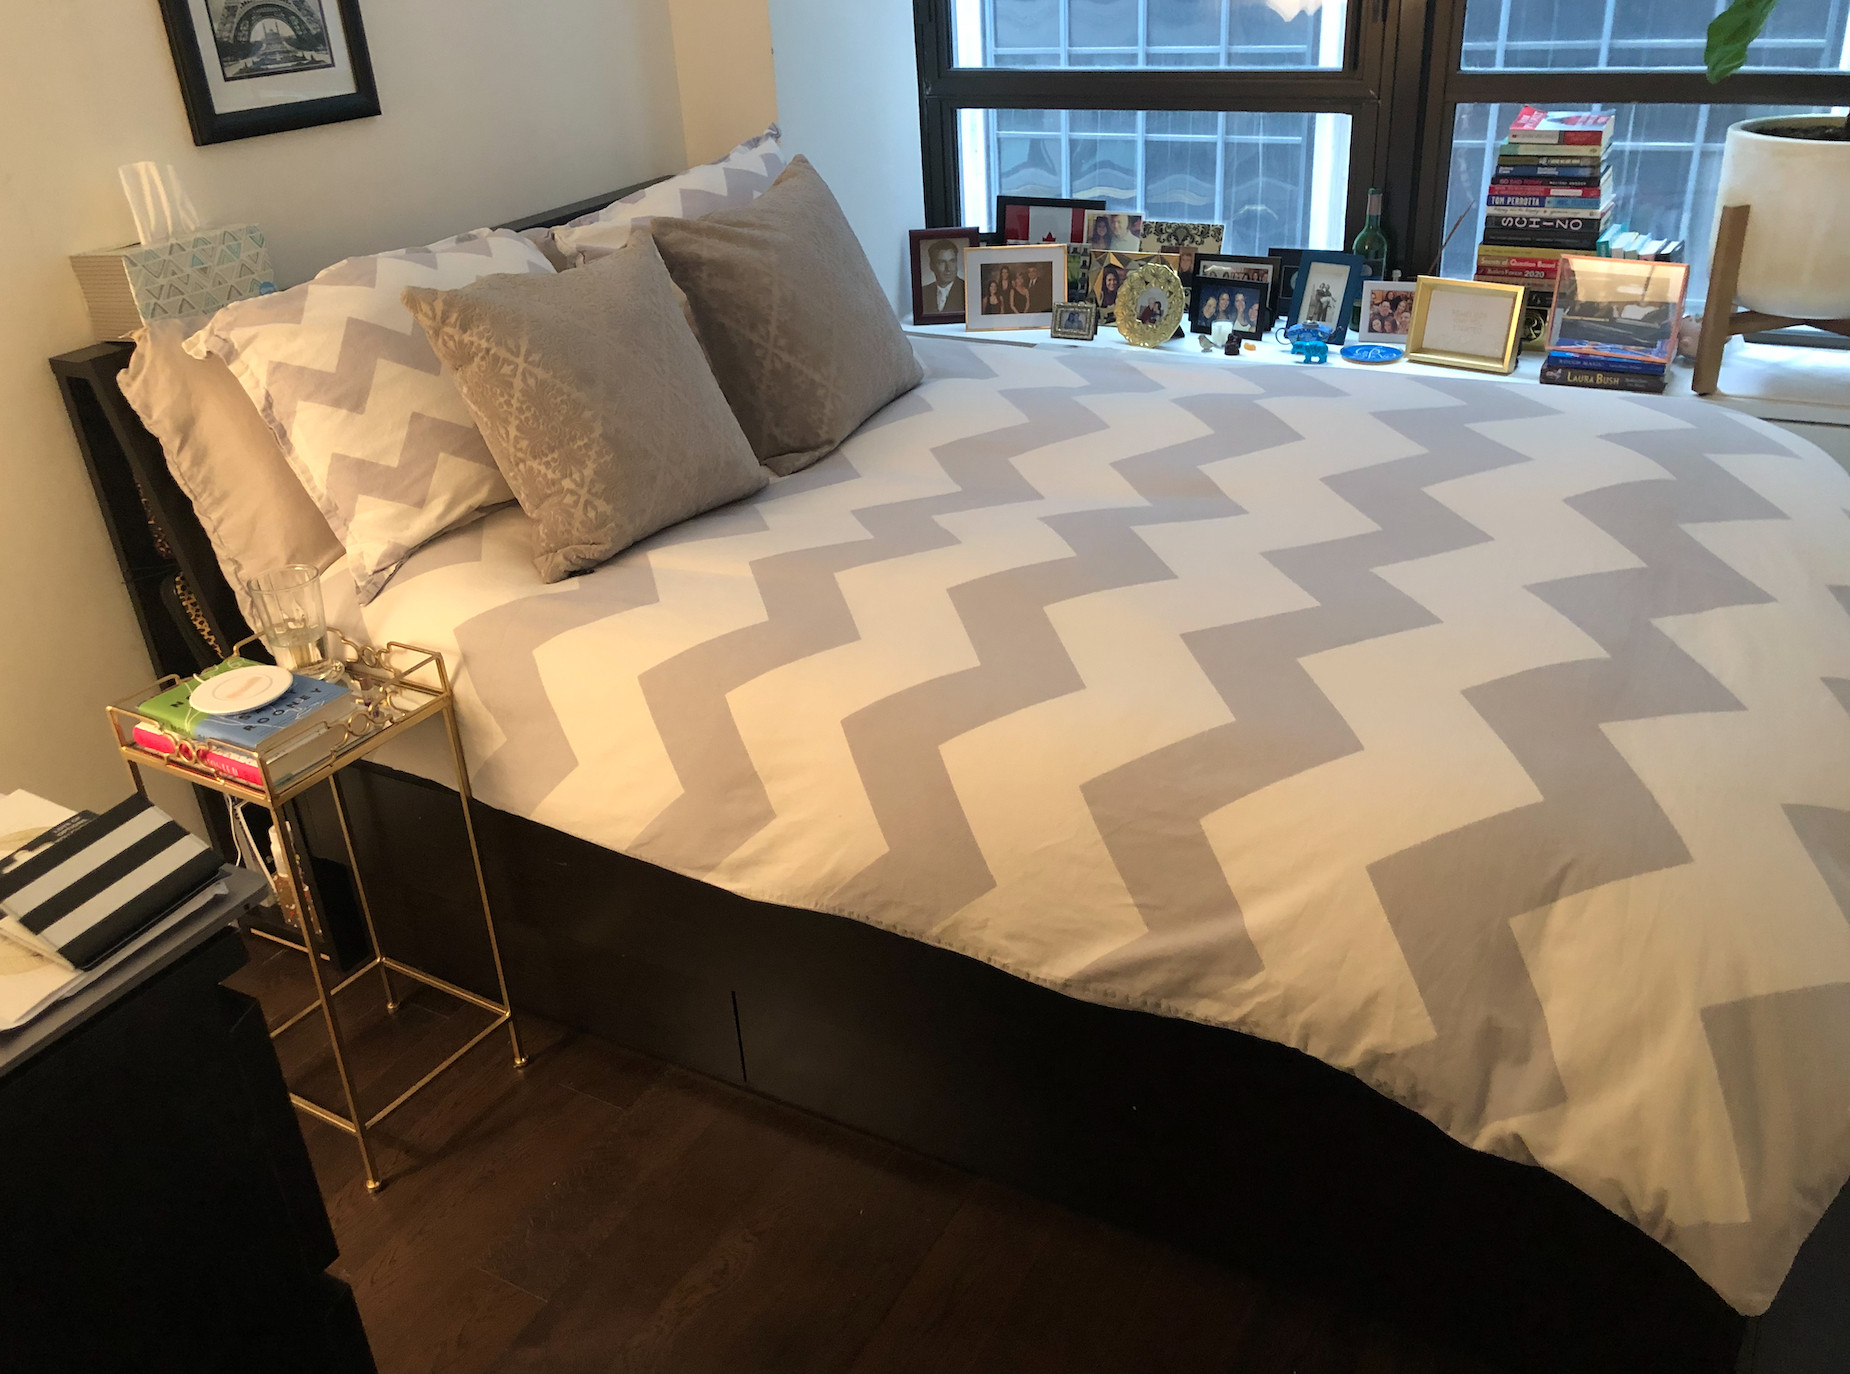 Ikea Bed Frame w/ Headboard & 4-Drawer Storage